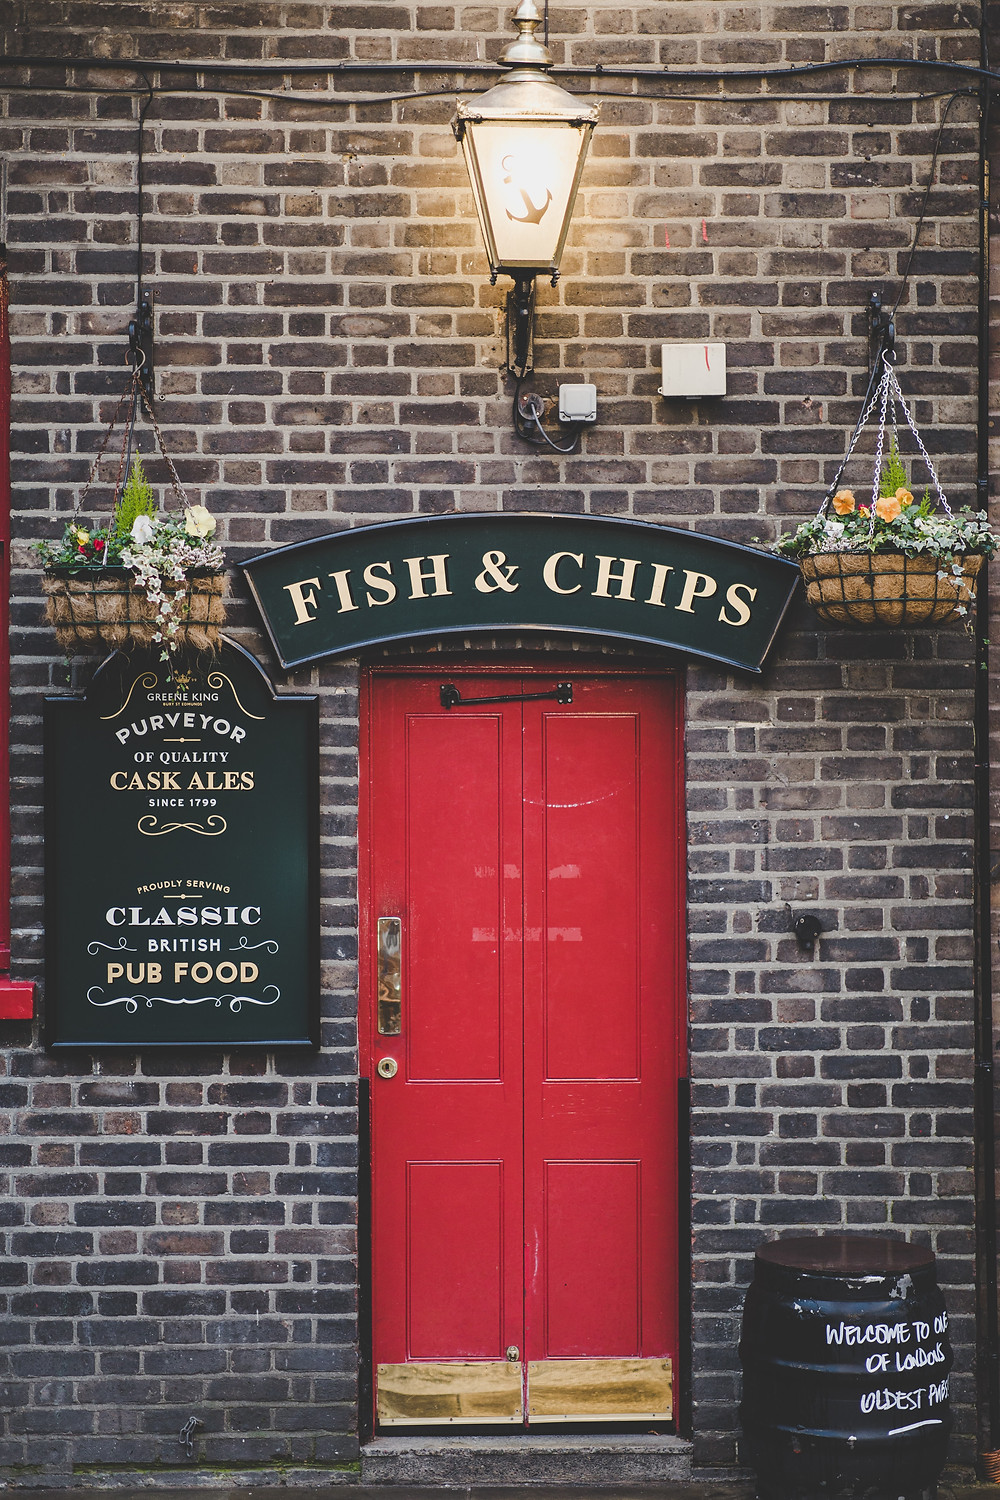 Fish and chips EPOS supplied by CRS-epos